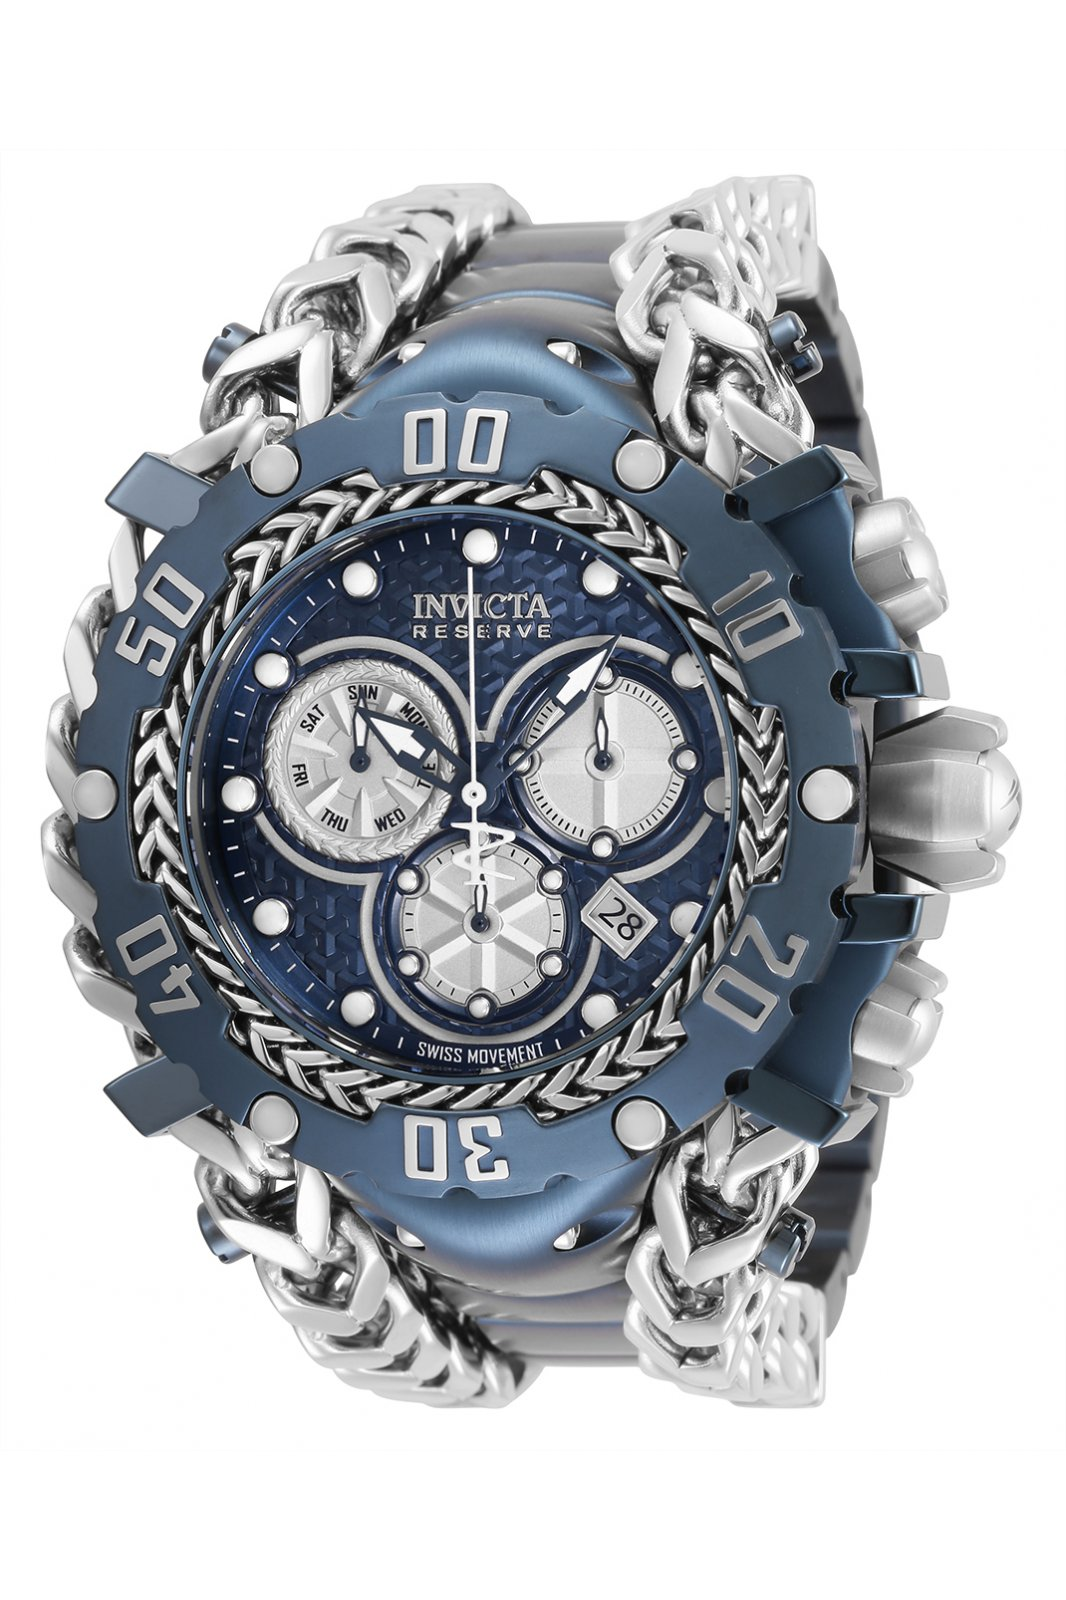 Invicta Reserve - Gladiator 34438 Montre Homme  - 55.25mm